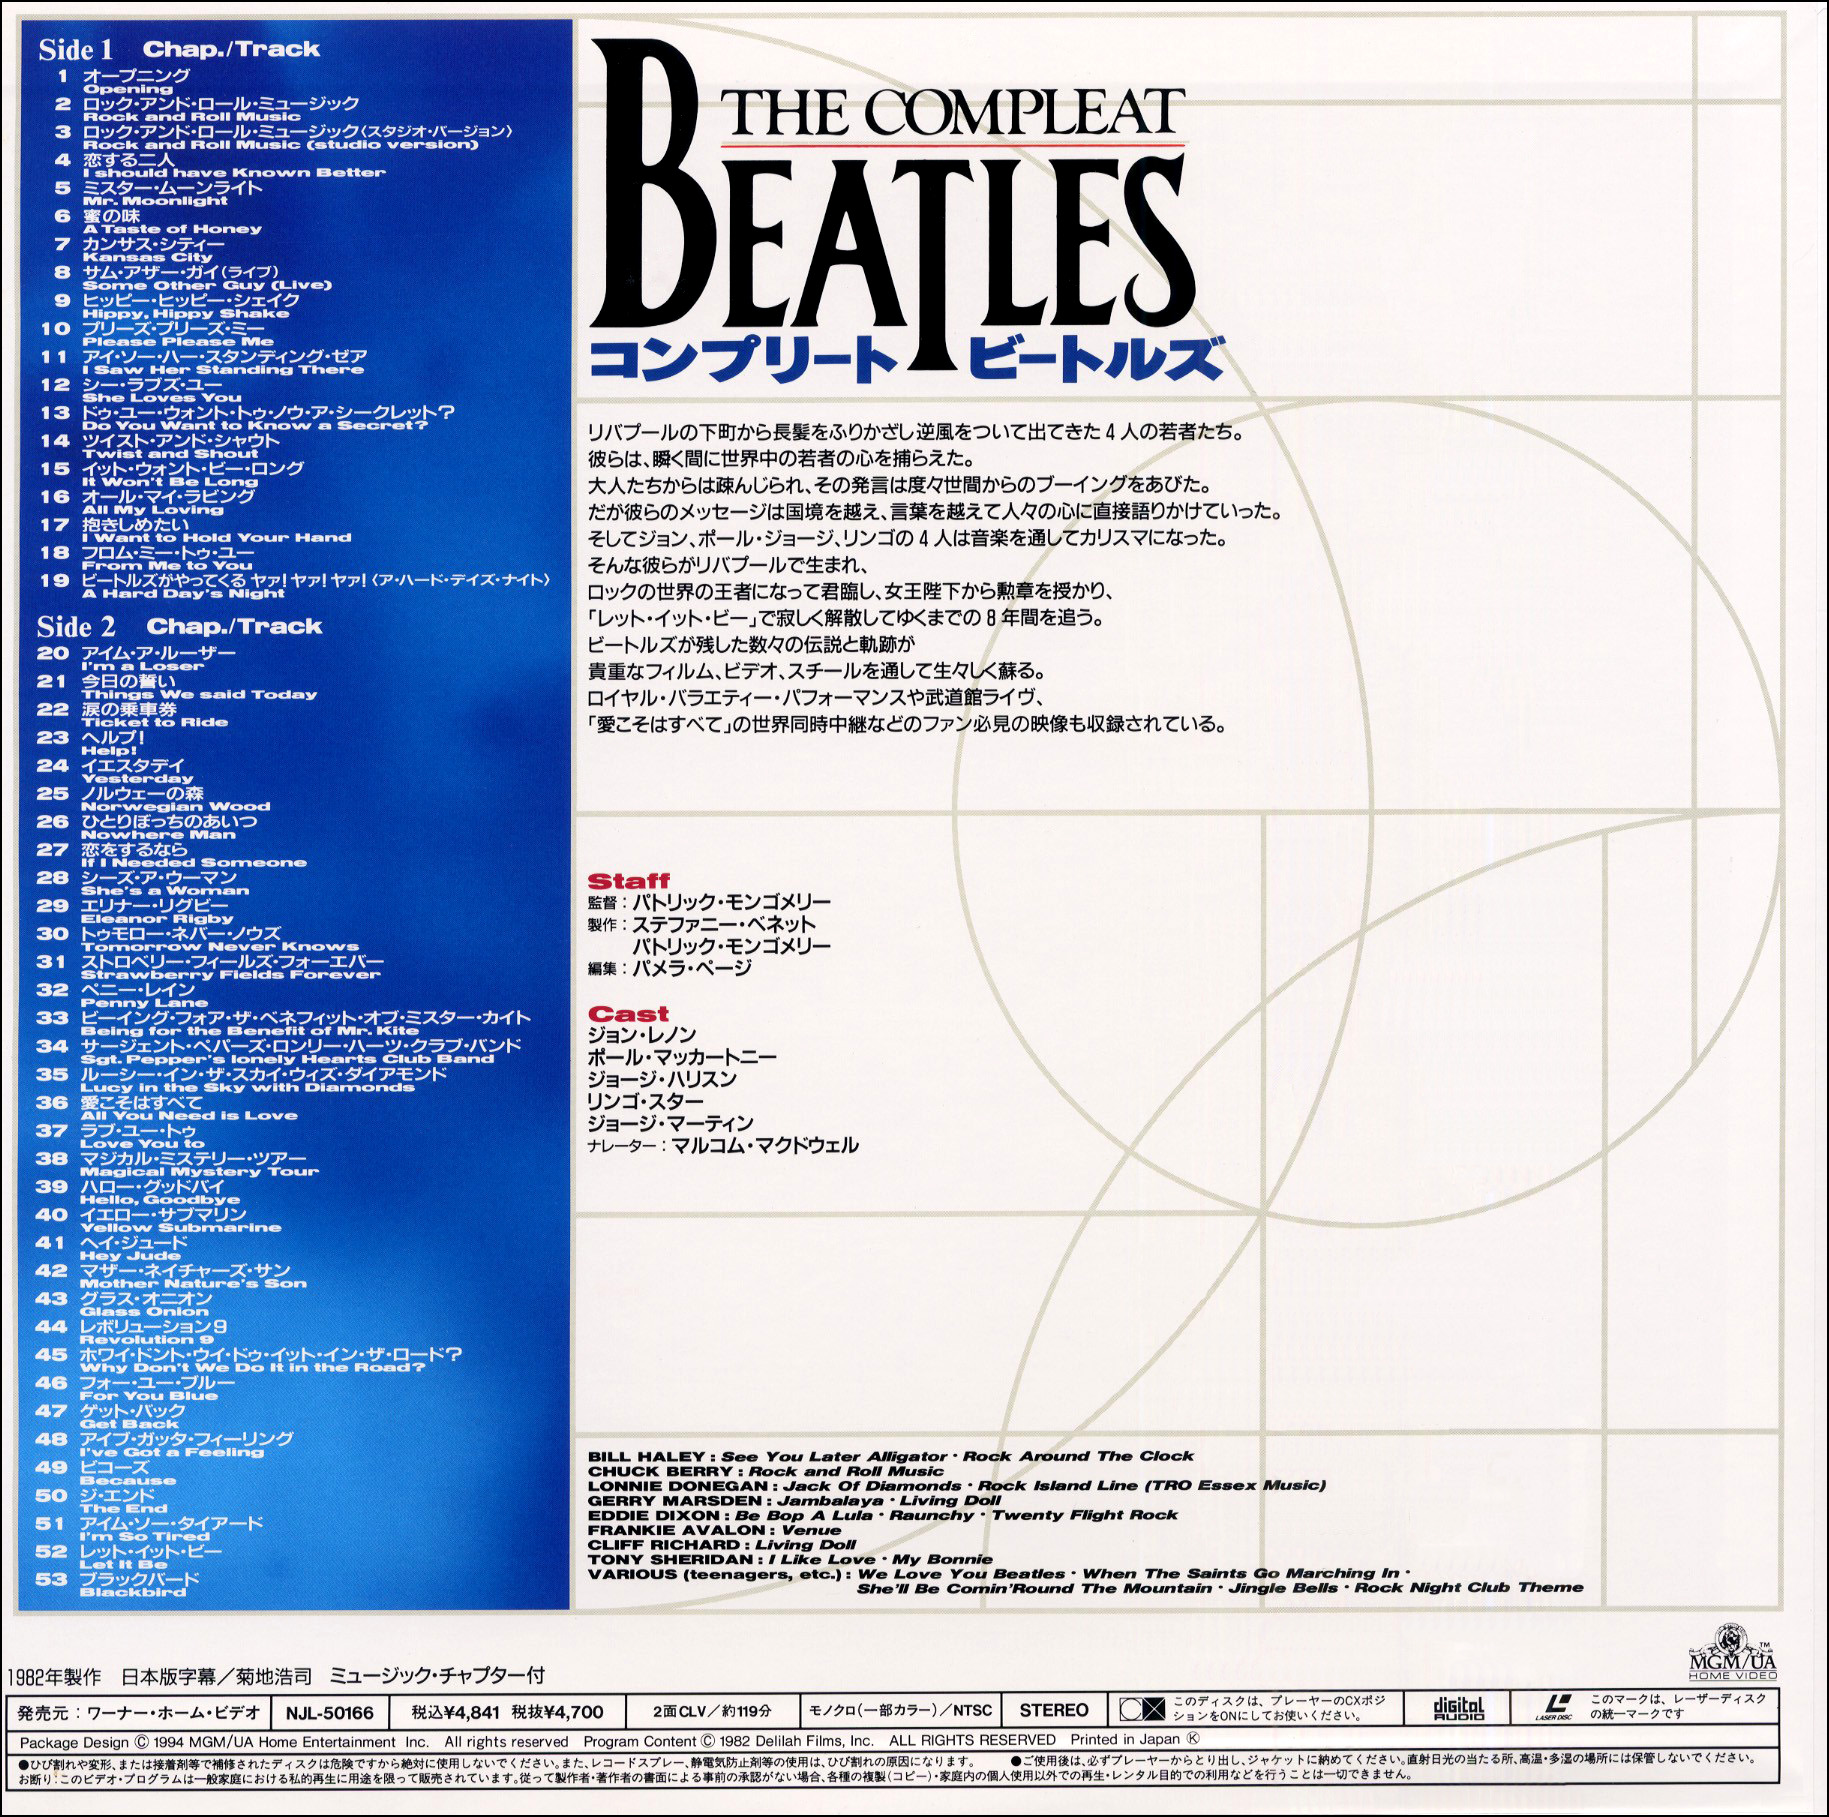 The compleat beatles cultinru